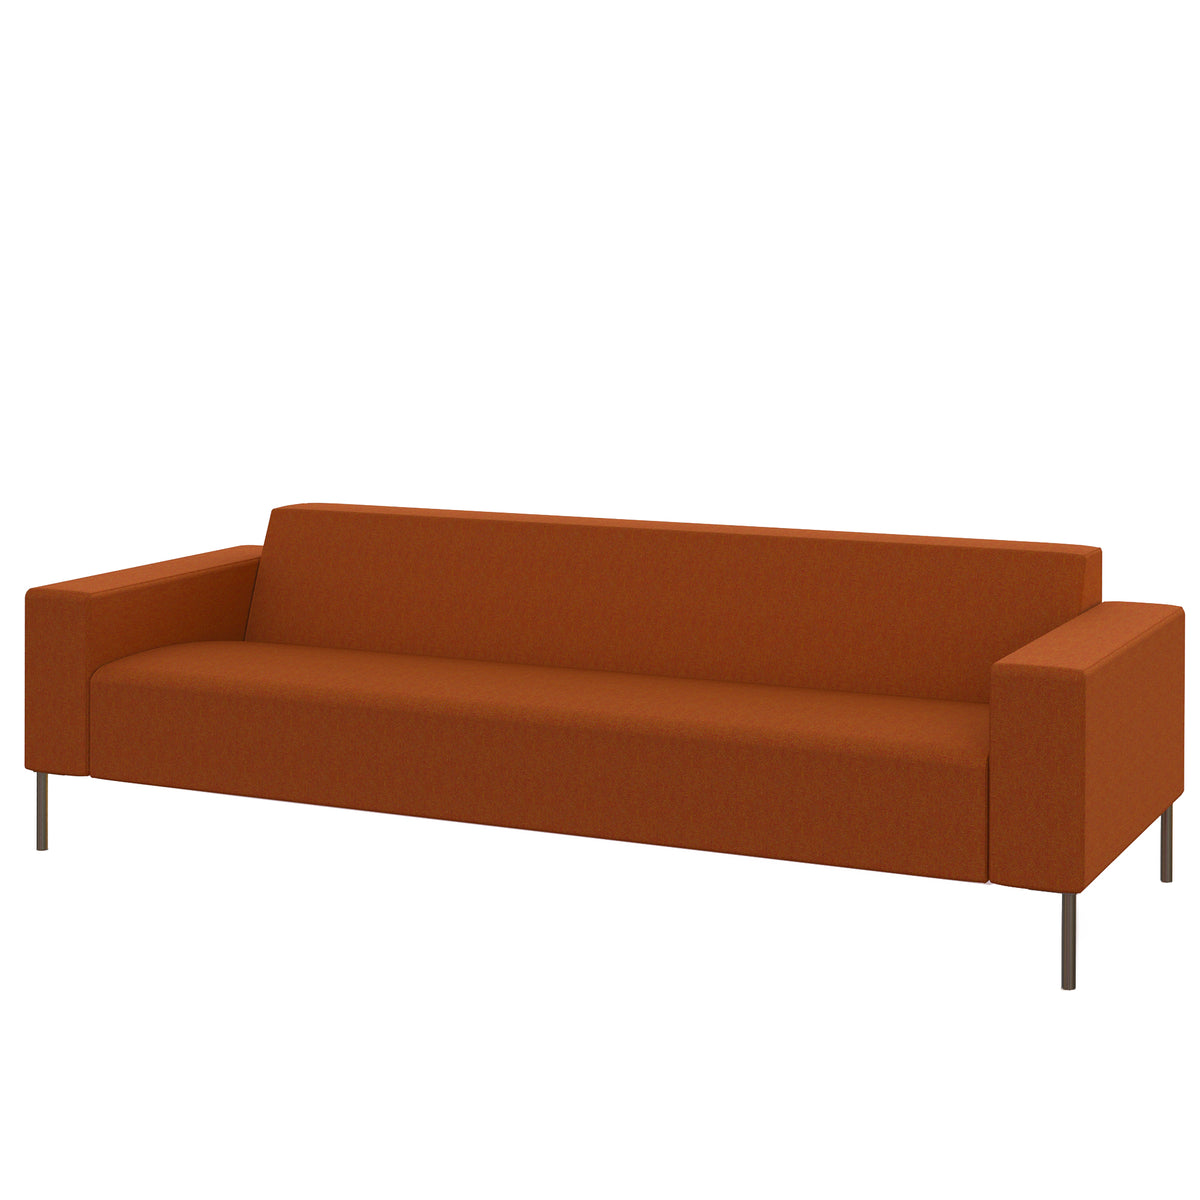 Hitch Mylius HM18 Origin Three Seat Sofa Brushed Stainless Steel Legs Leyton